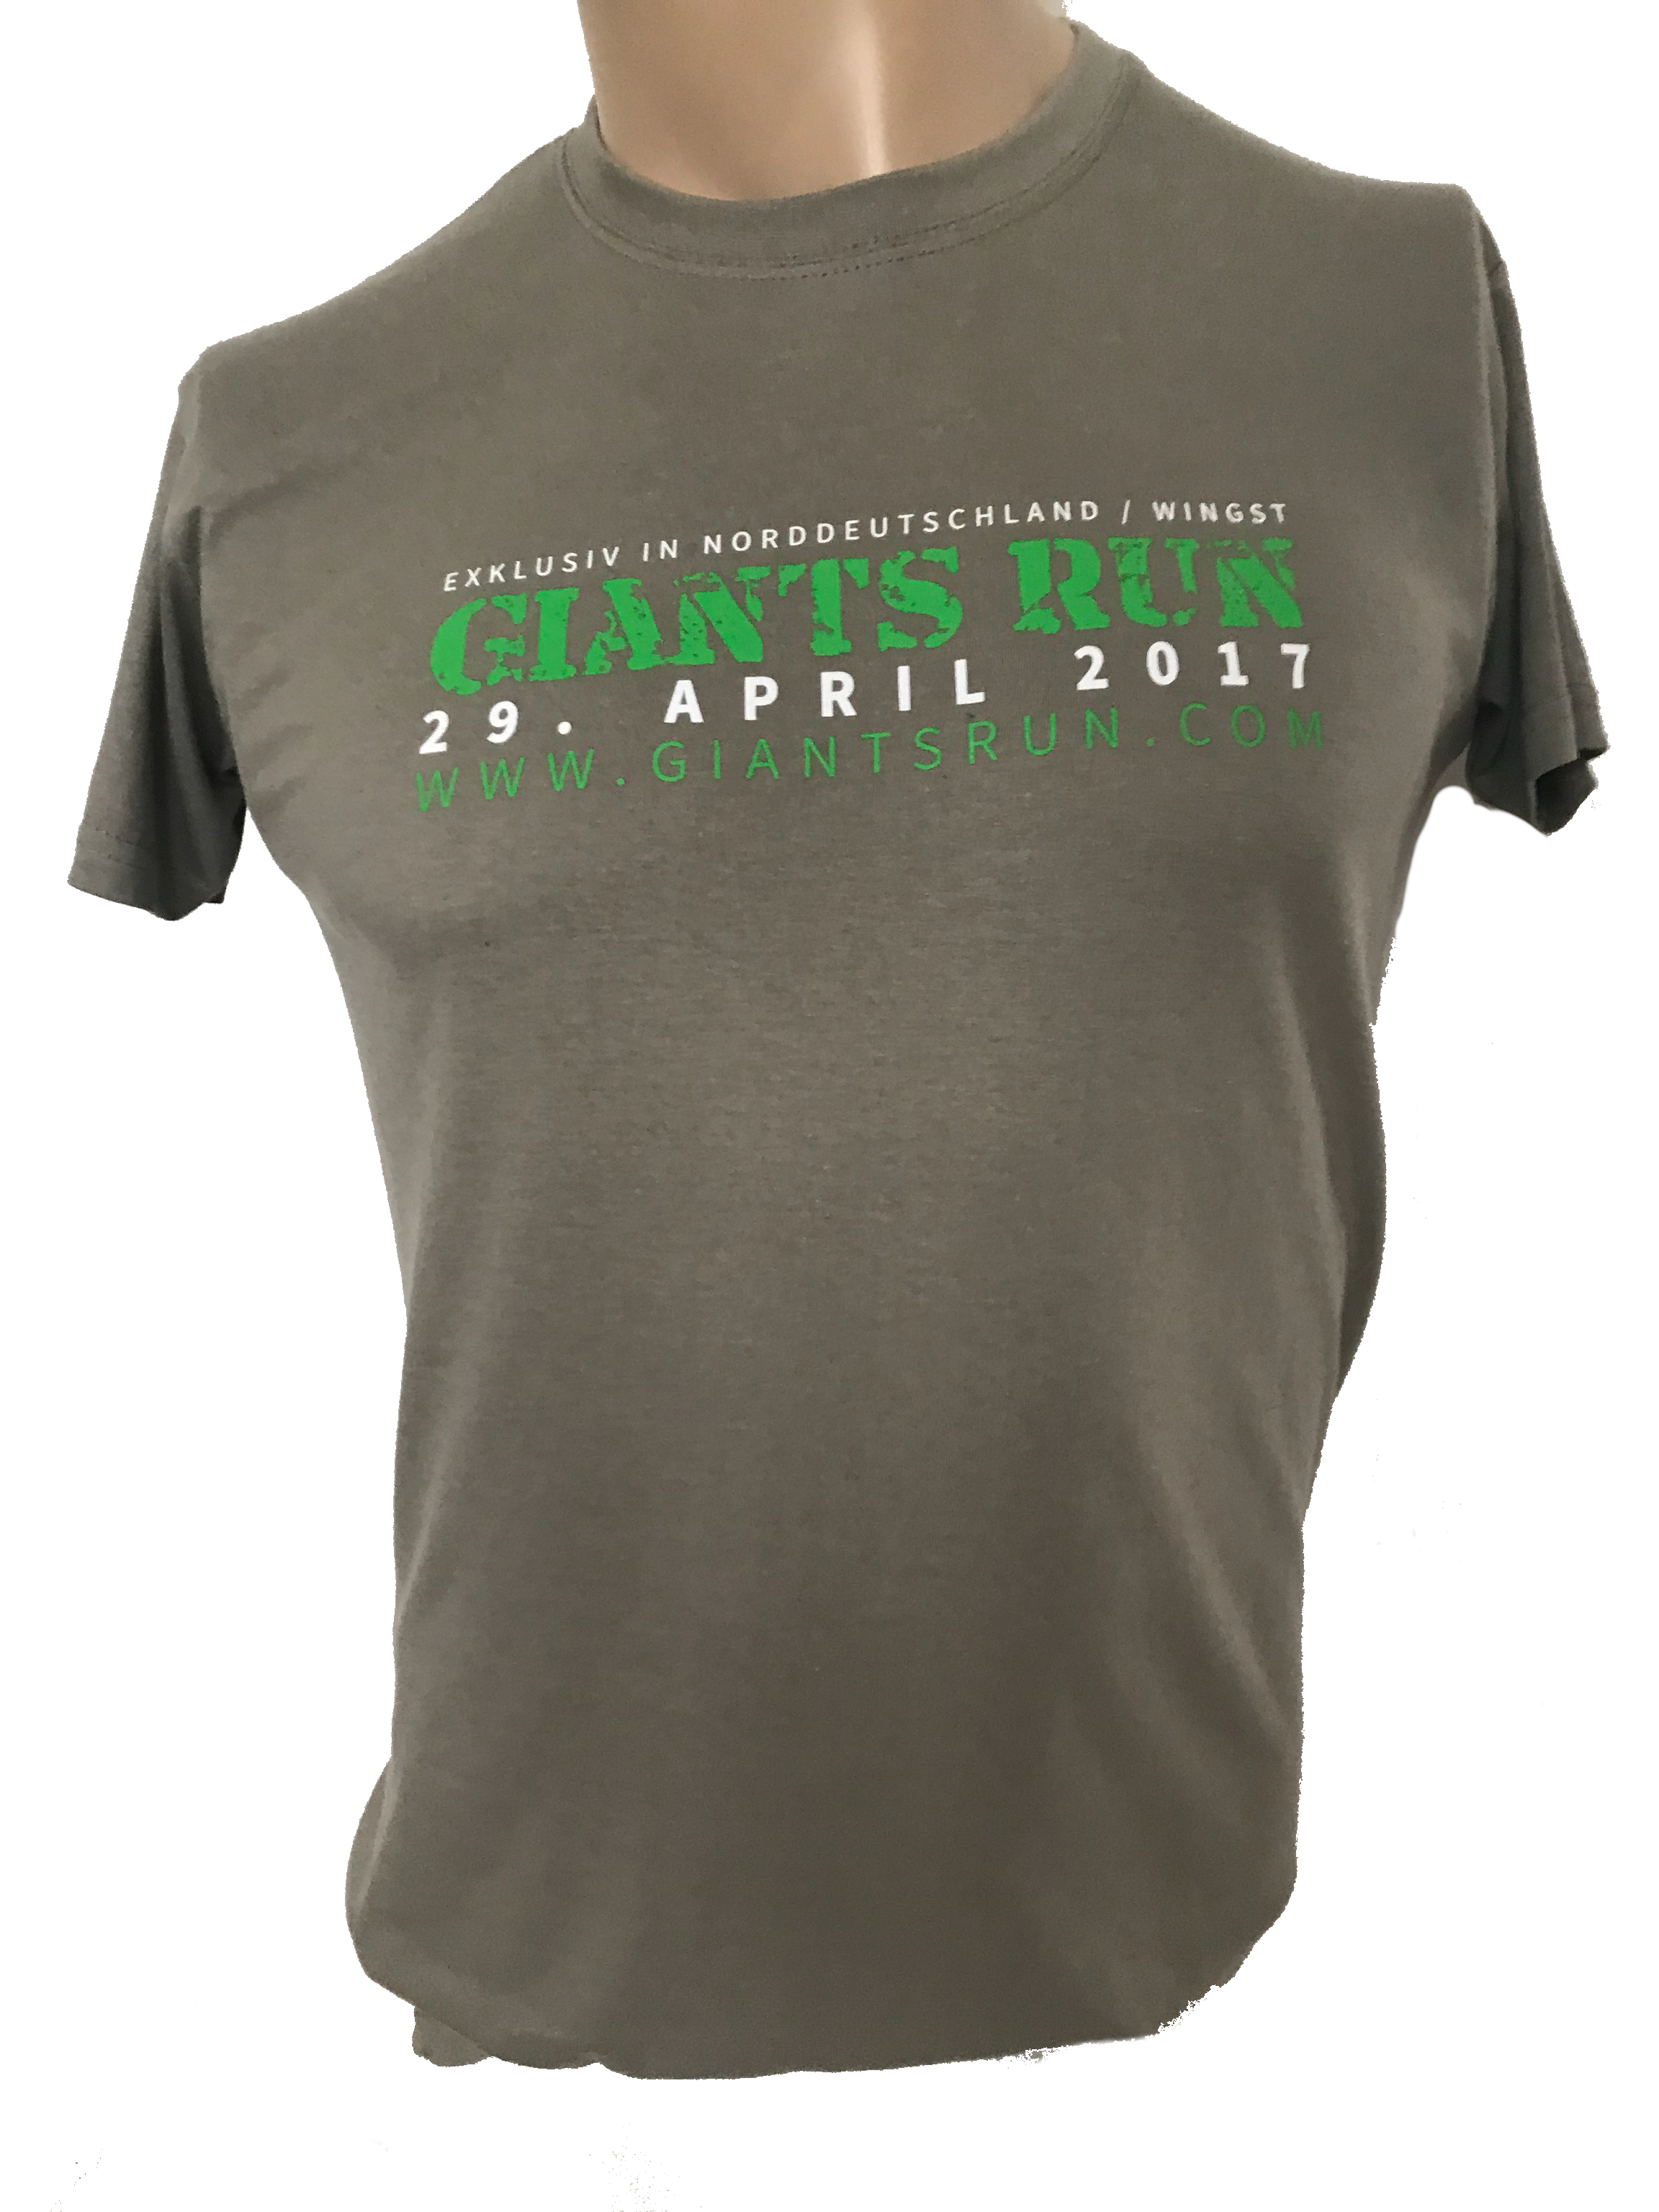 T Shirt 'GIANTS RUN ® 2017' Herren schwarz grau